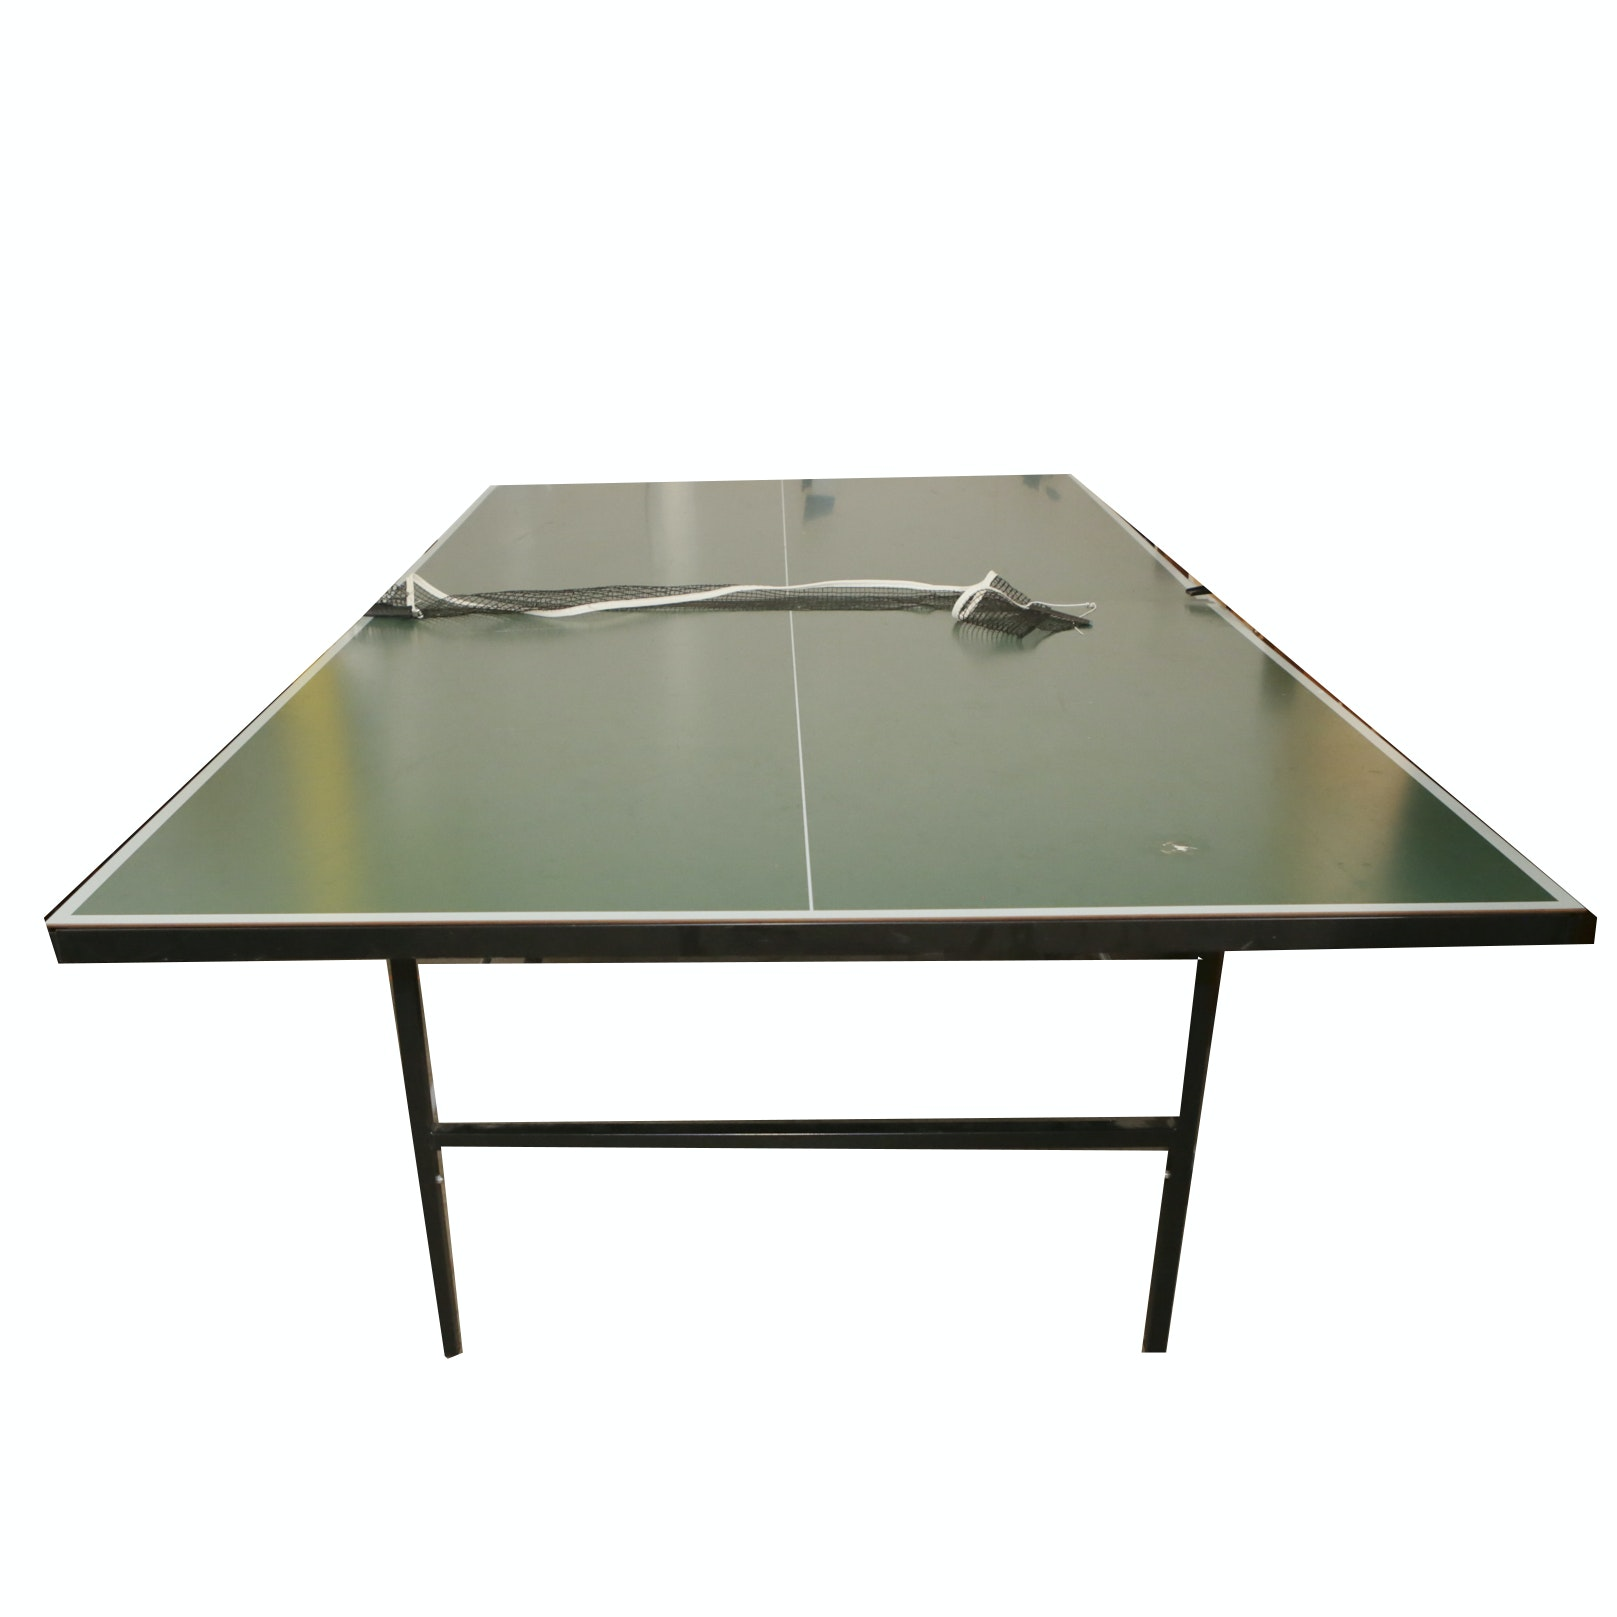 butterfly ping pong table ebth rh ebth com butterfly ping pong table assembly instructions butterfly ping pong table cover